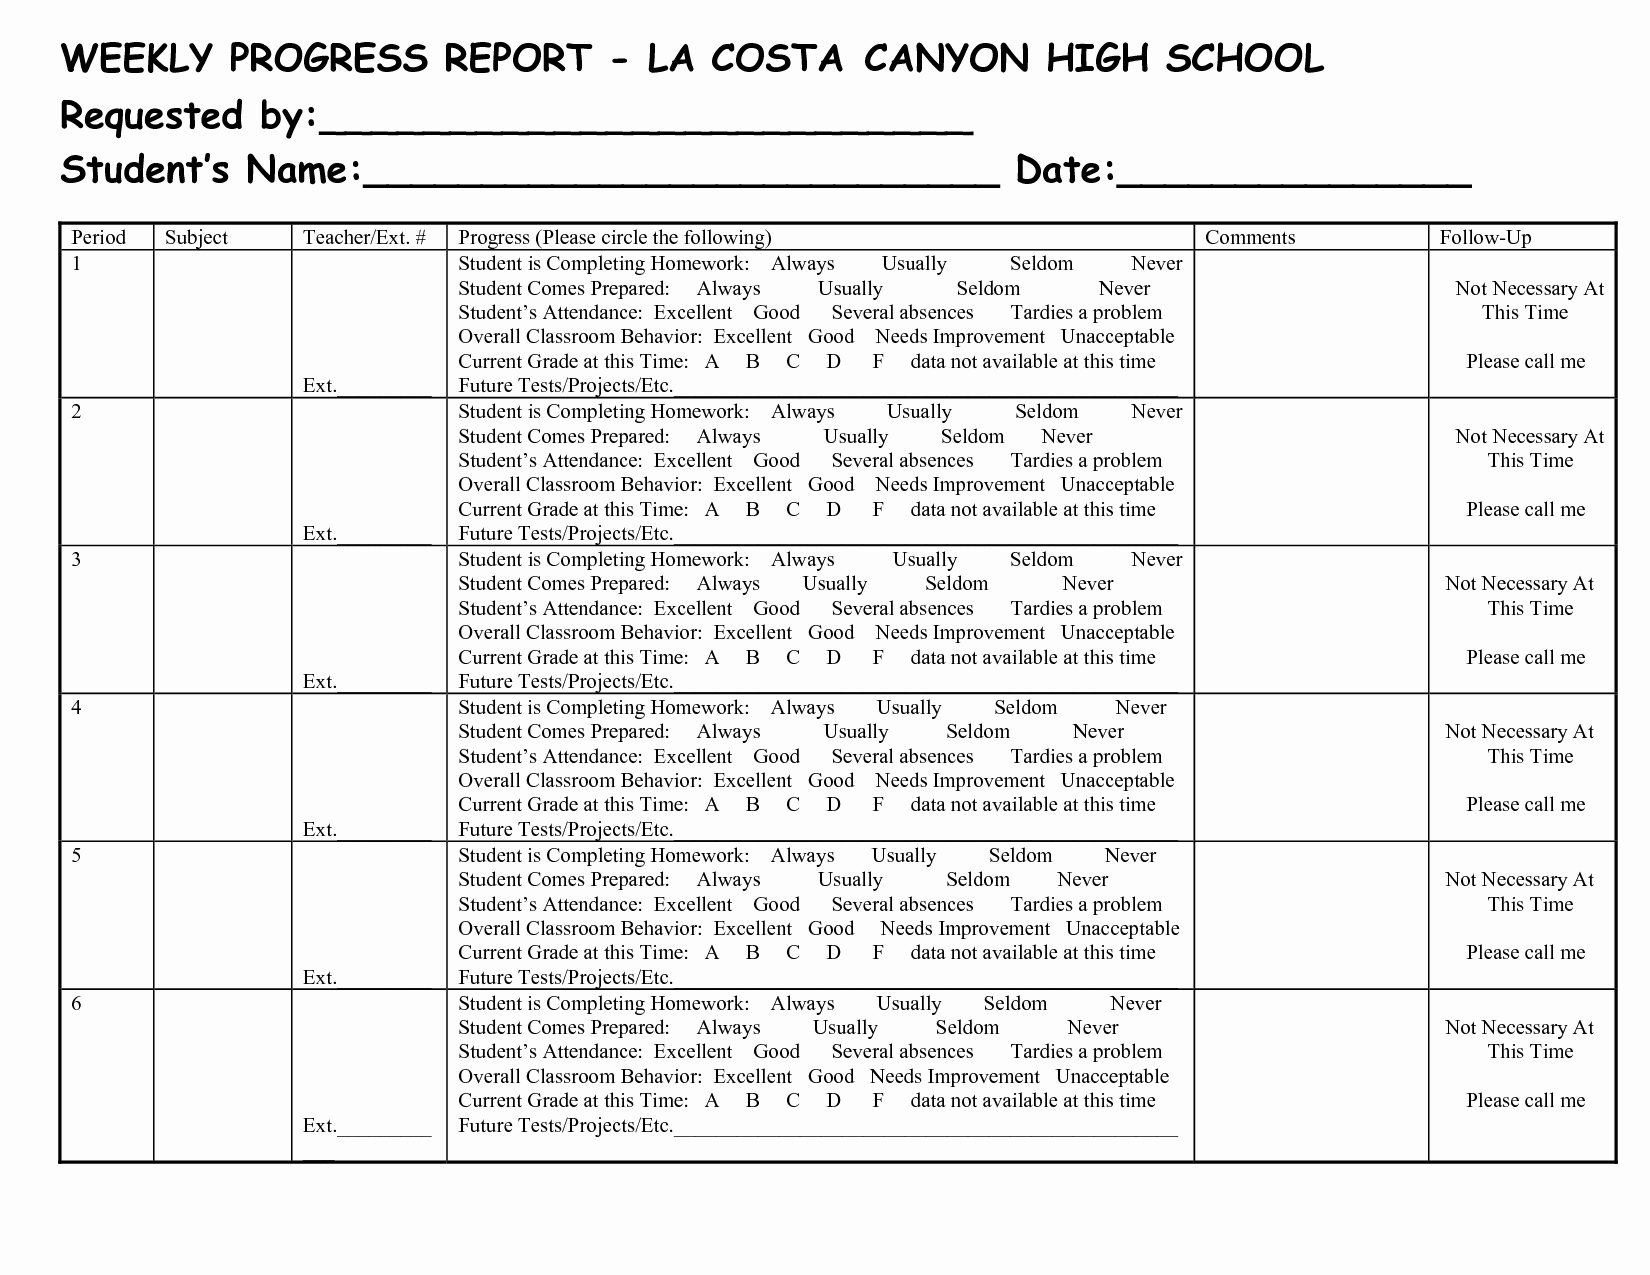 Weekly Progress Report Template Luxury School Weekly Progress Report Template